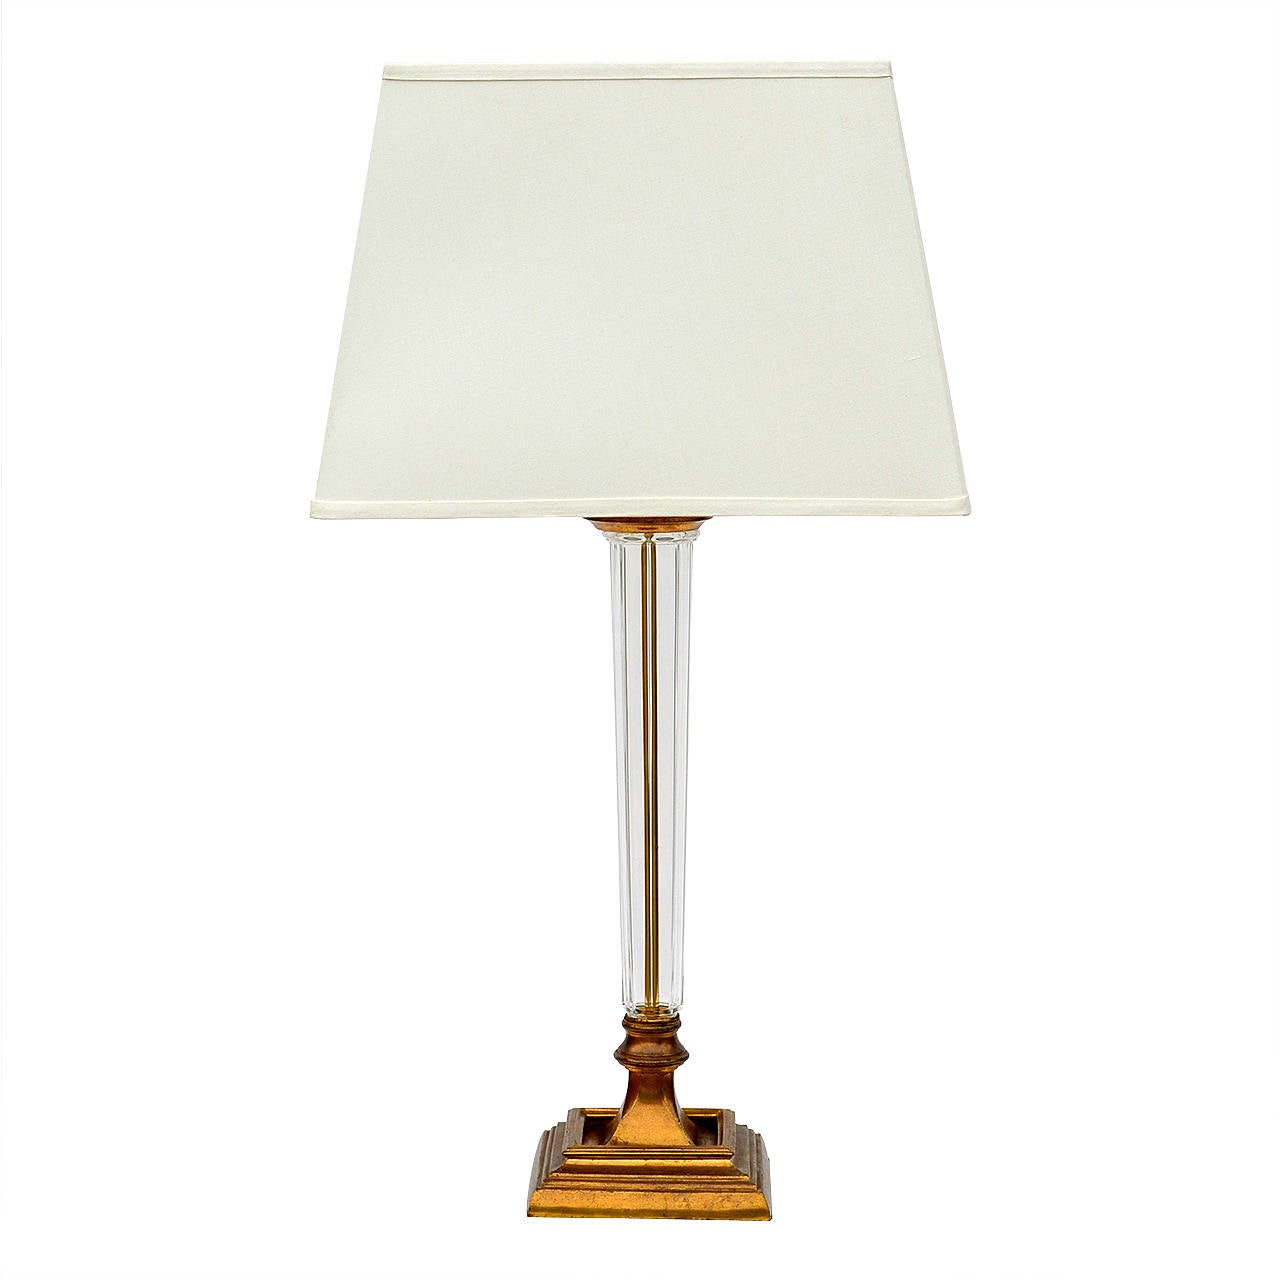 Fluted glass column table lamp designer tables reference for Table column